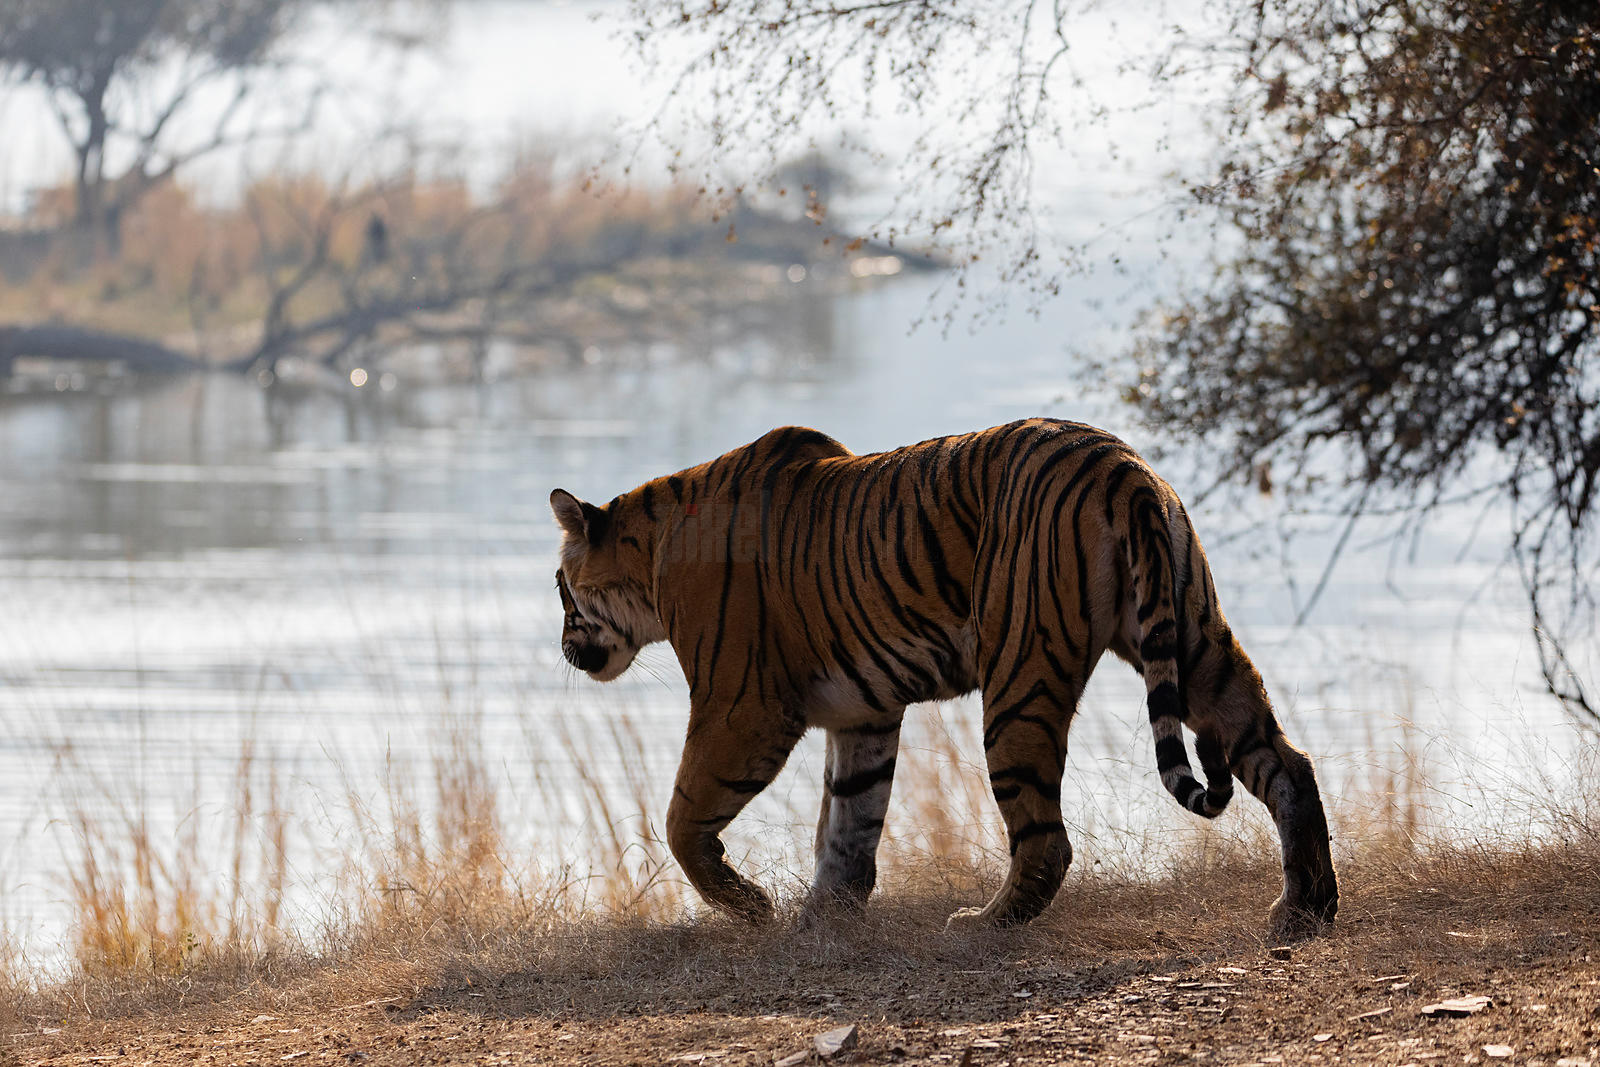 Tigress Walking Towards Lake